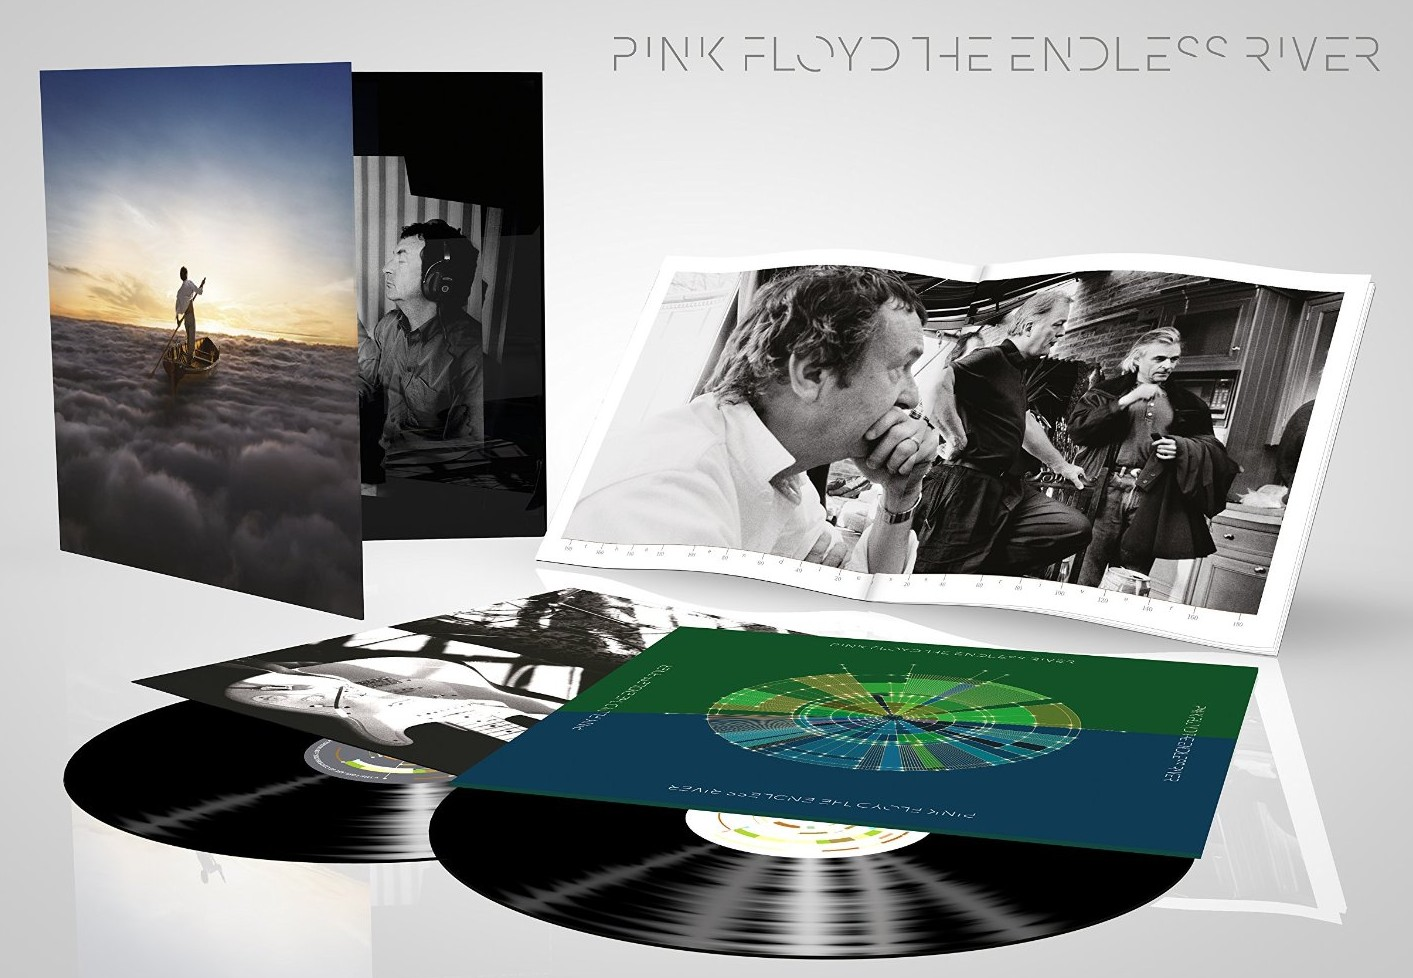 Pink Floyd / The Endless River 2LP gatefold vinyl